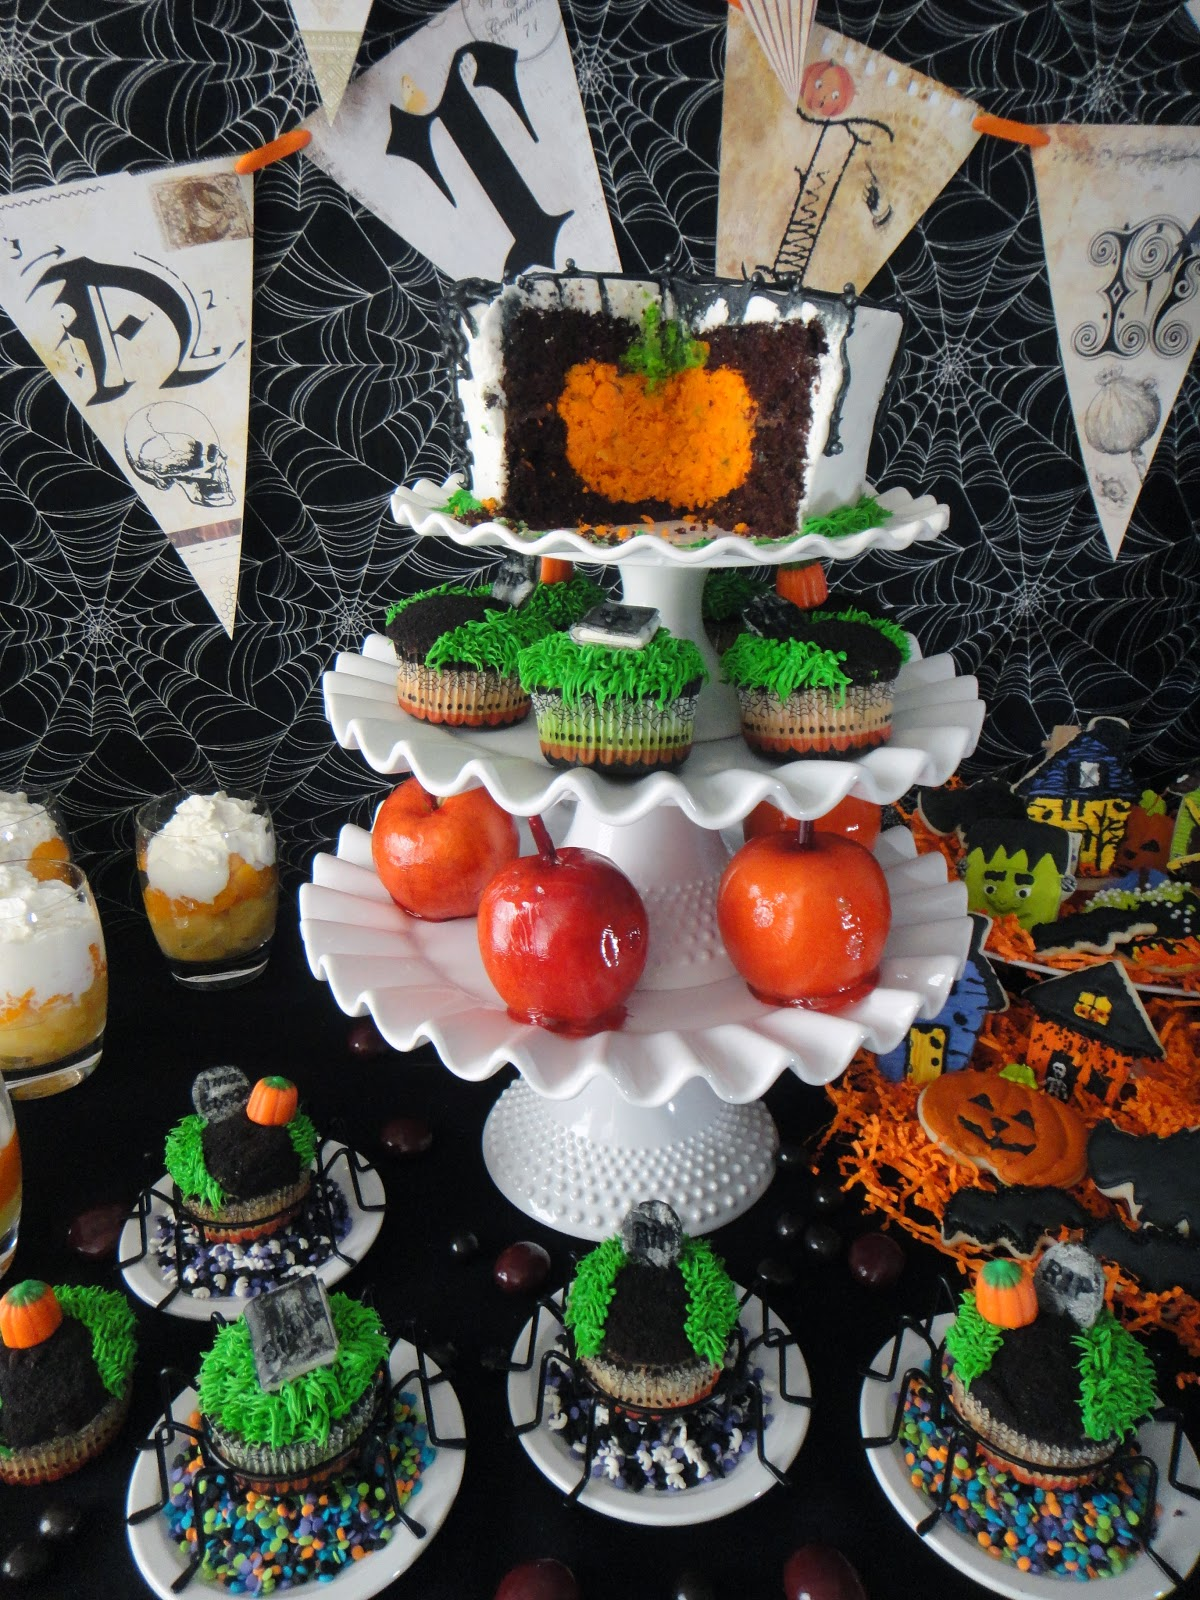 Halloween Witch Party Food On The Computer Games Play